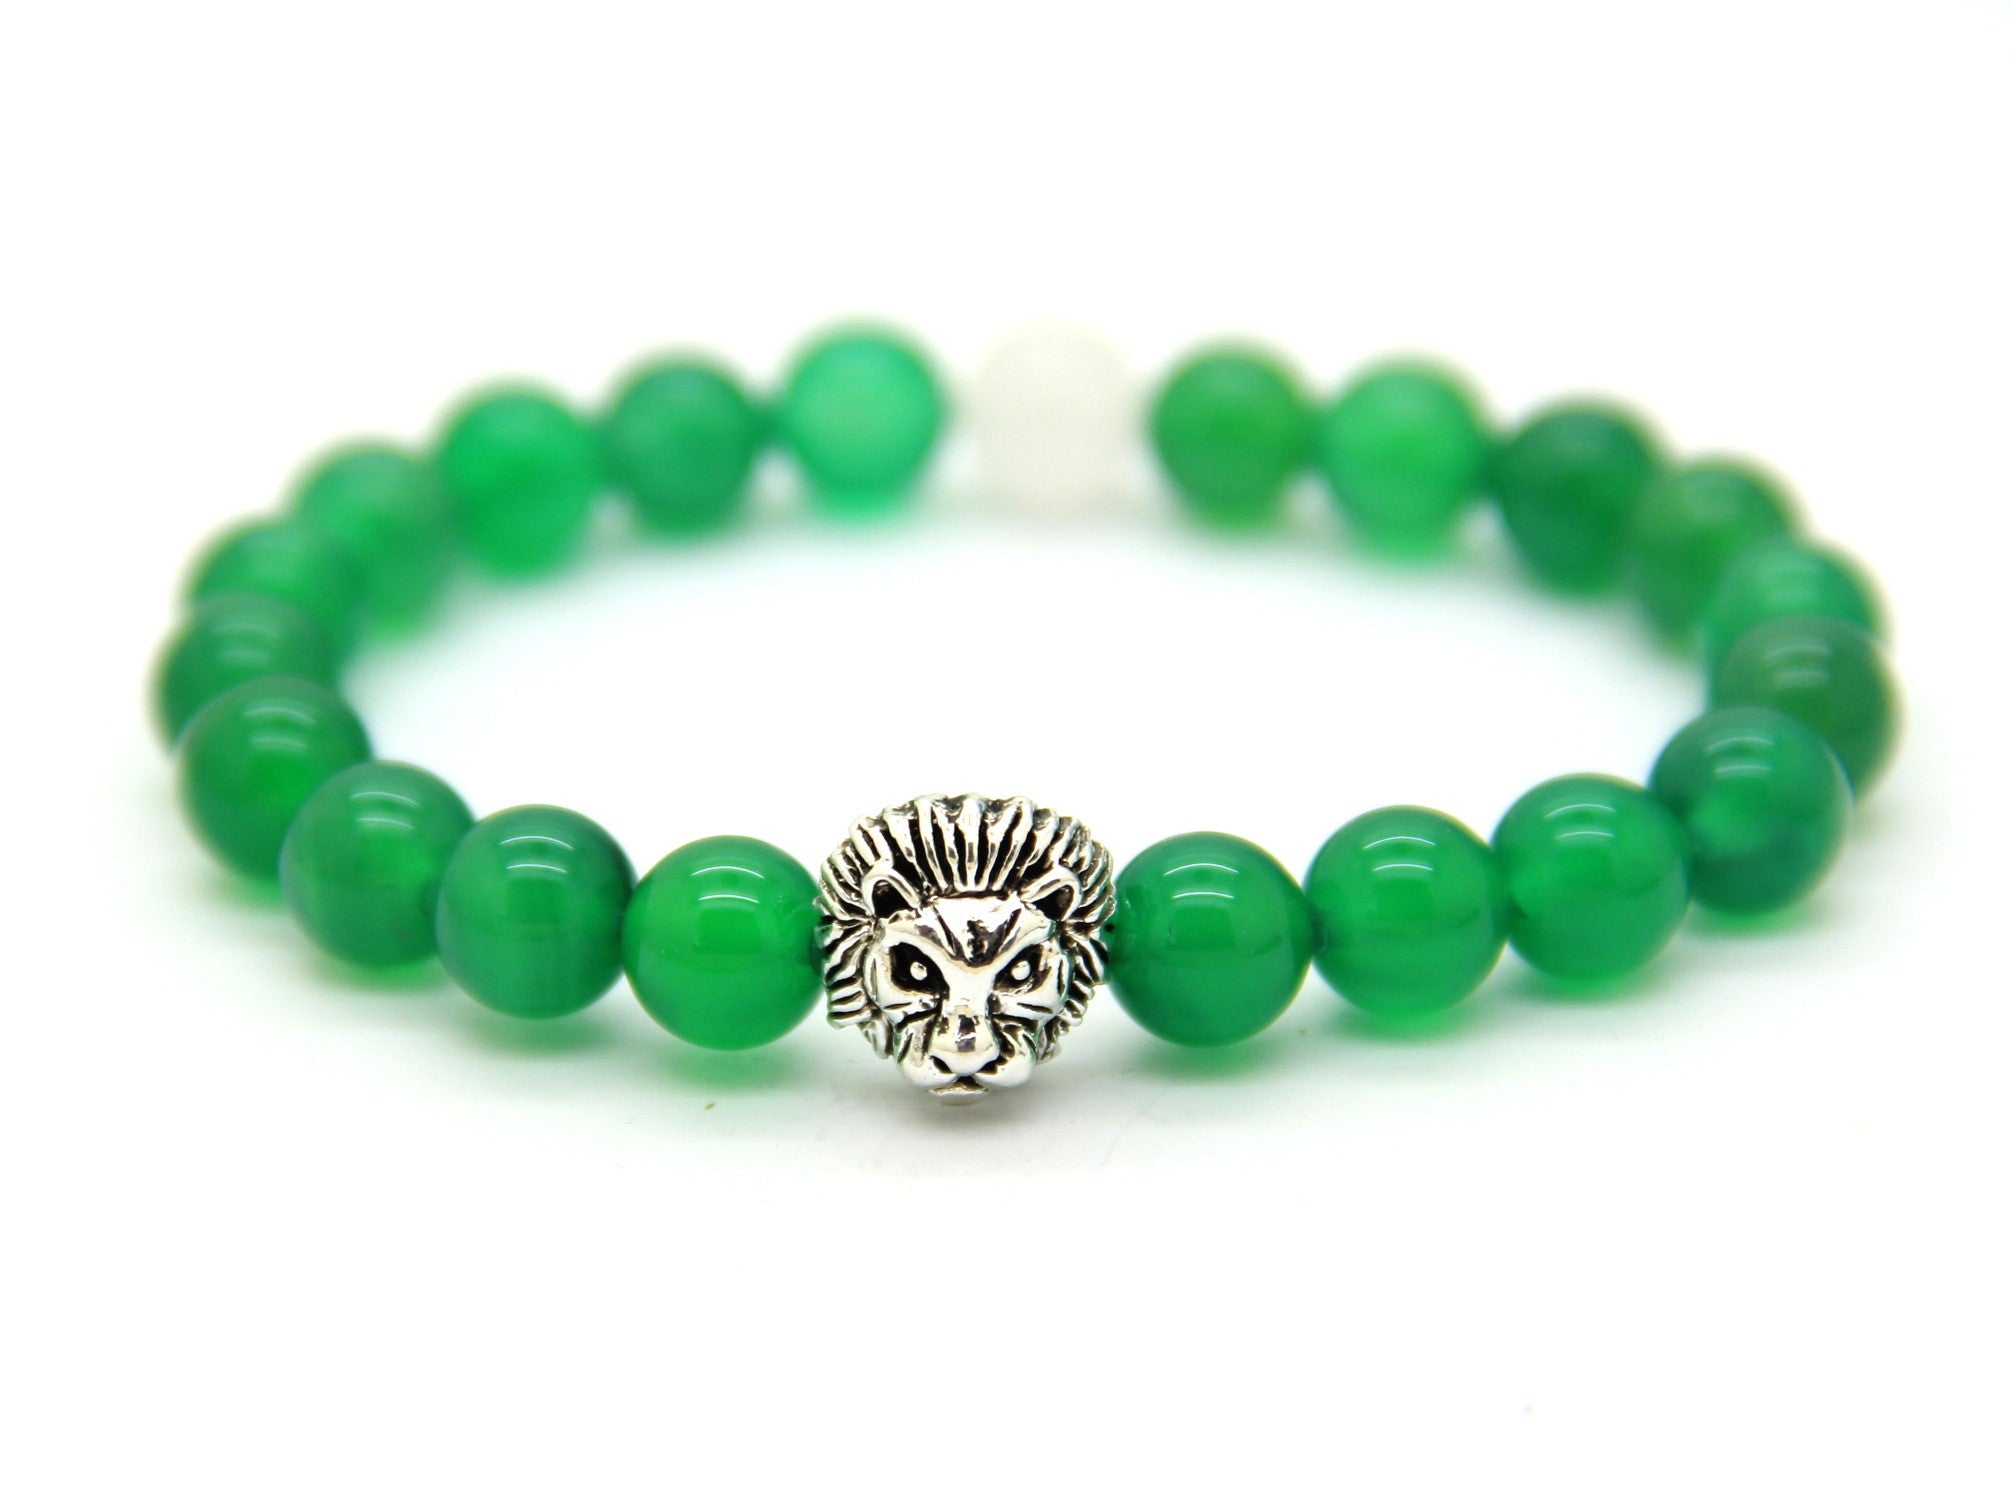 made shop stone green ftkc strand bracelet product two cowork